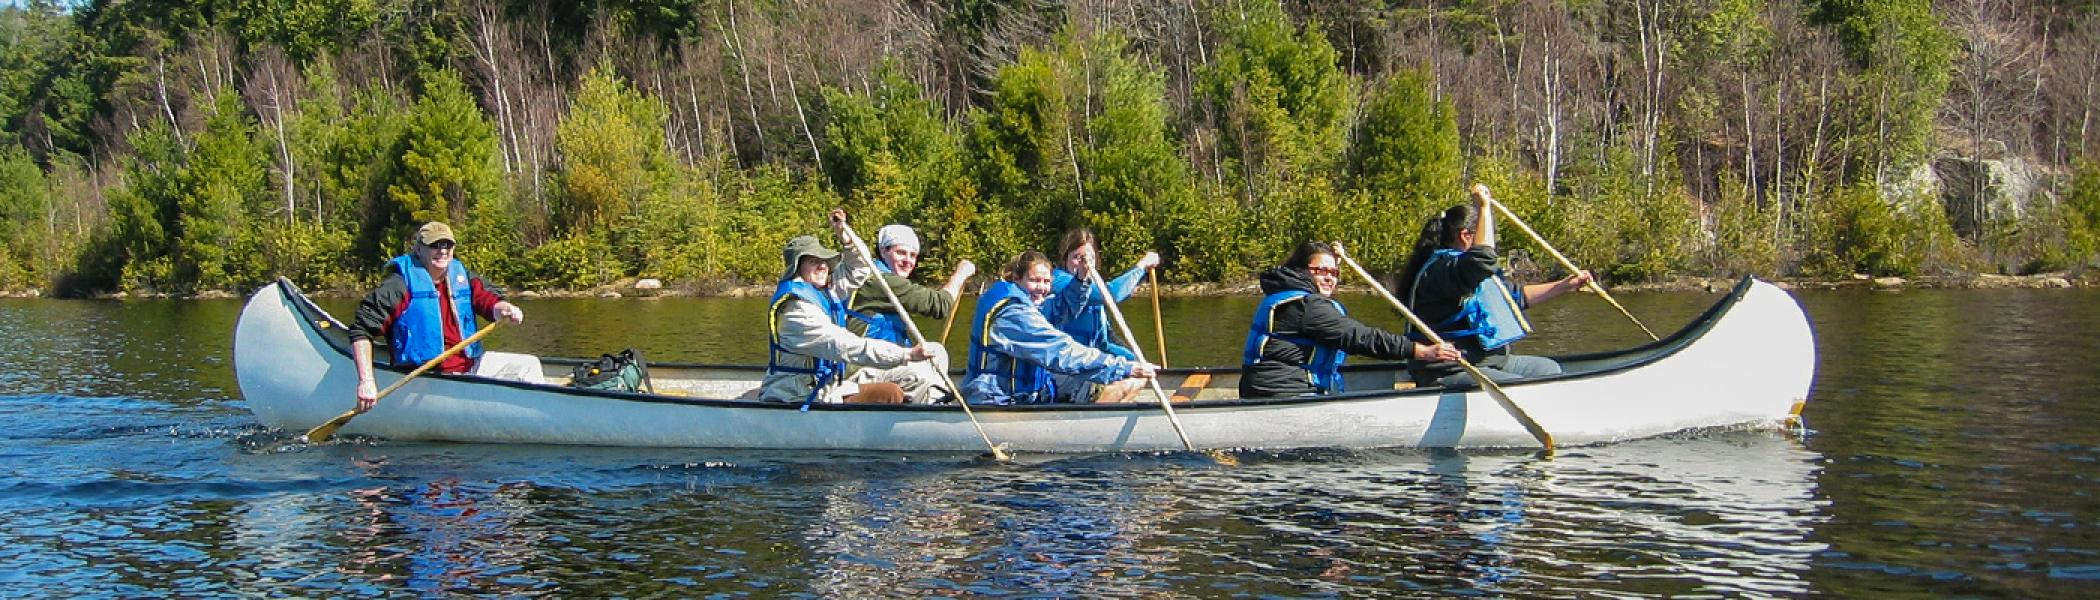 a group of people sitting in a canoe with blue life jackets on, paddling along a river in the summer sun